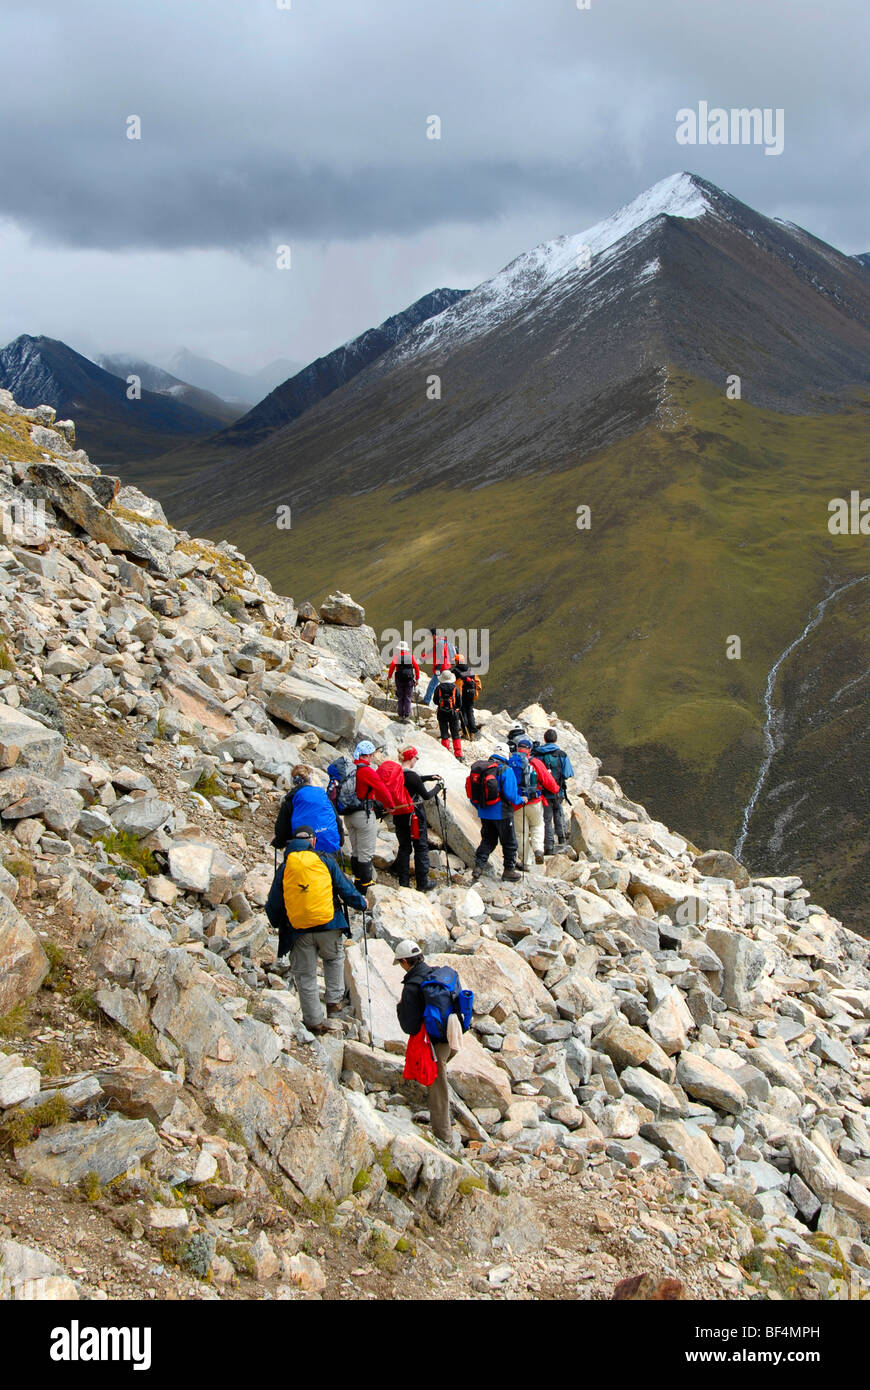 Trekking tourism, group of hikers, stony path, Shug-La Pass 5250 m, an old pilgrims' path through the high mountains - Stock Image